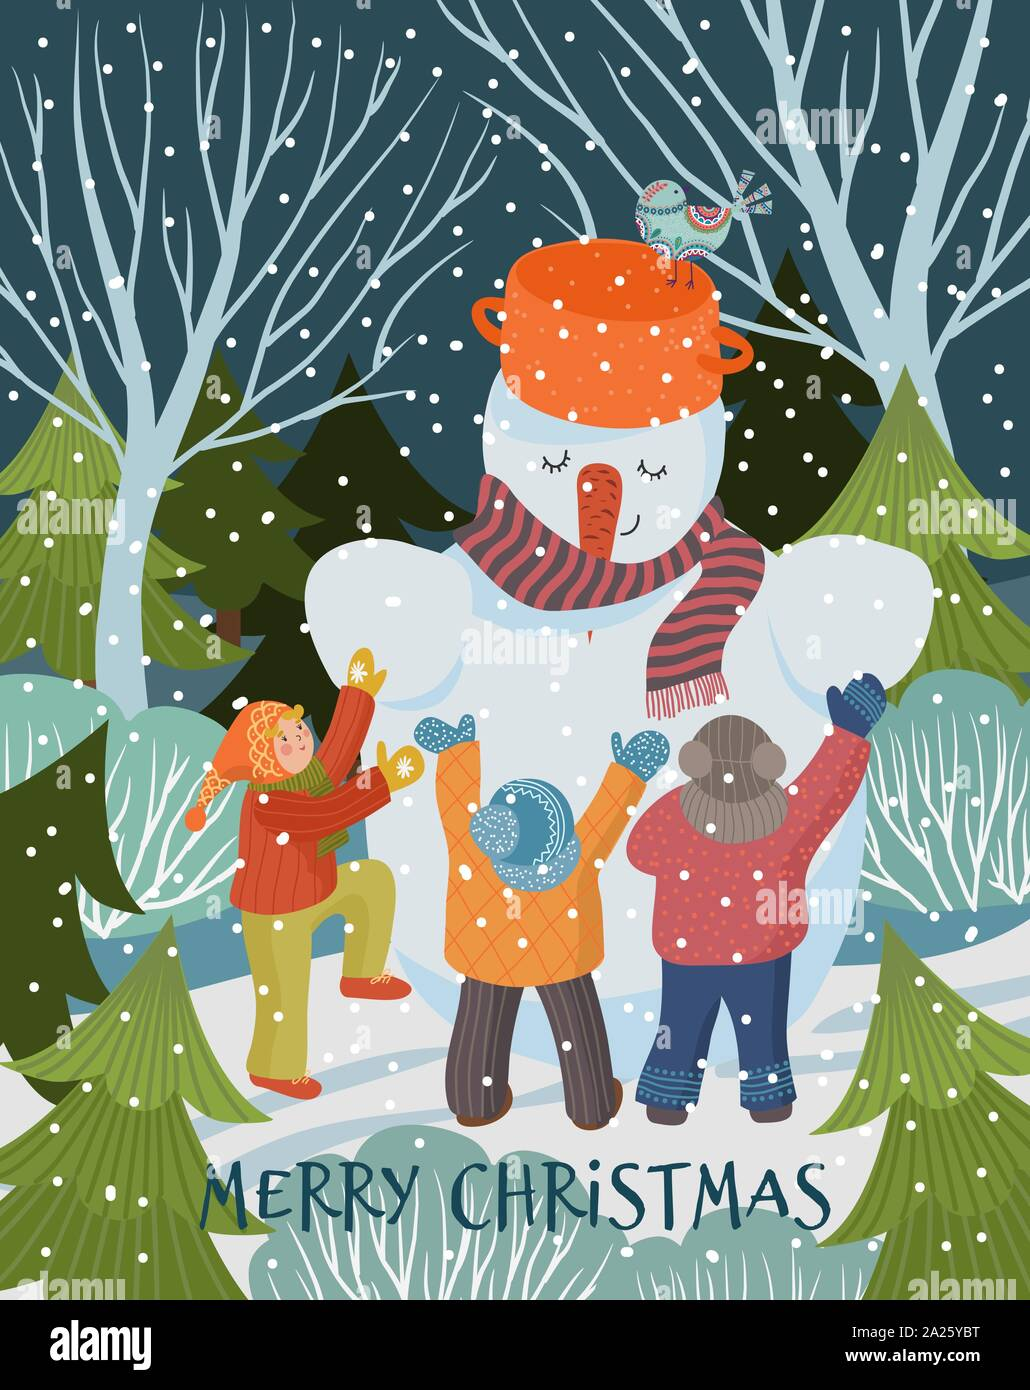 Merry Christmas And Happy New Year Vector Winter